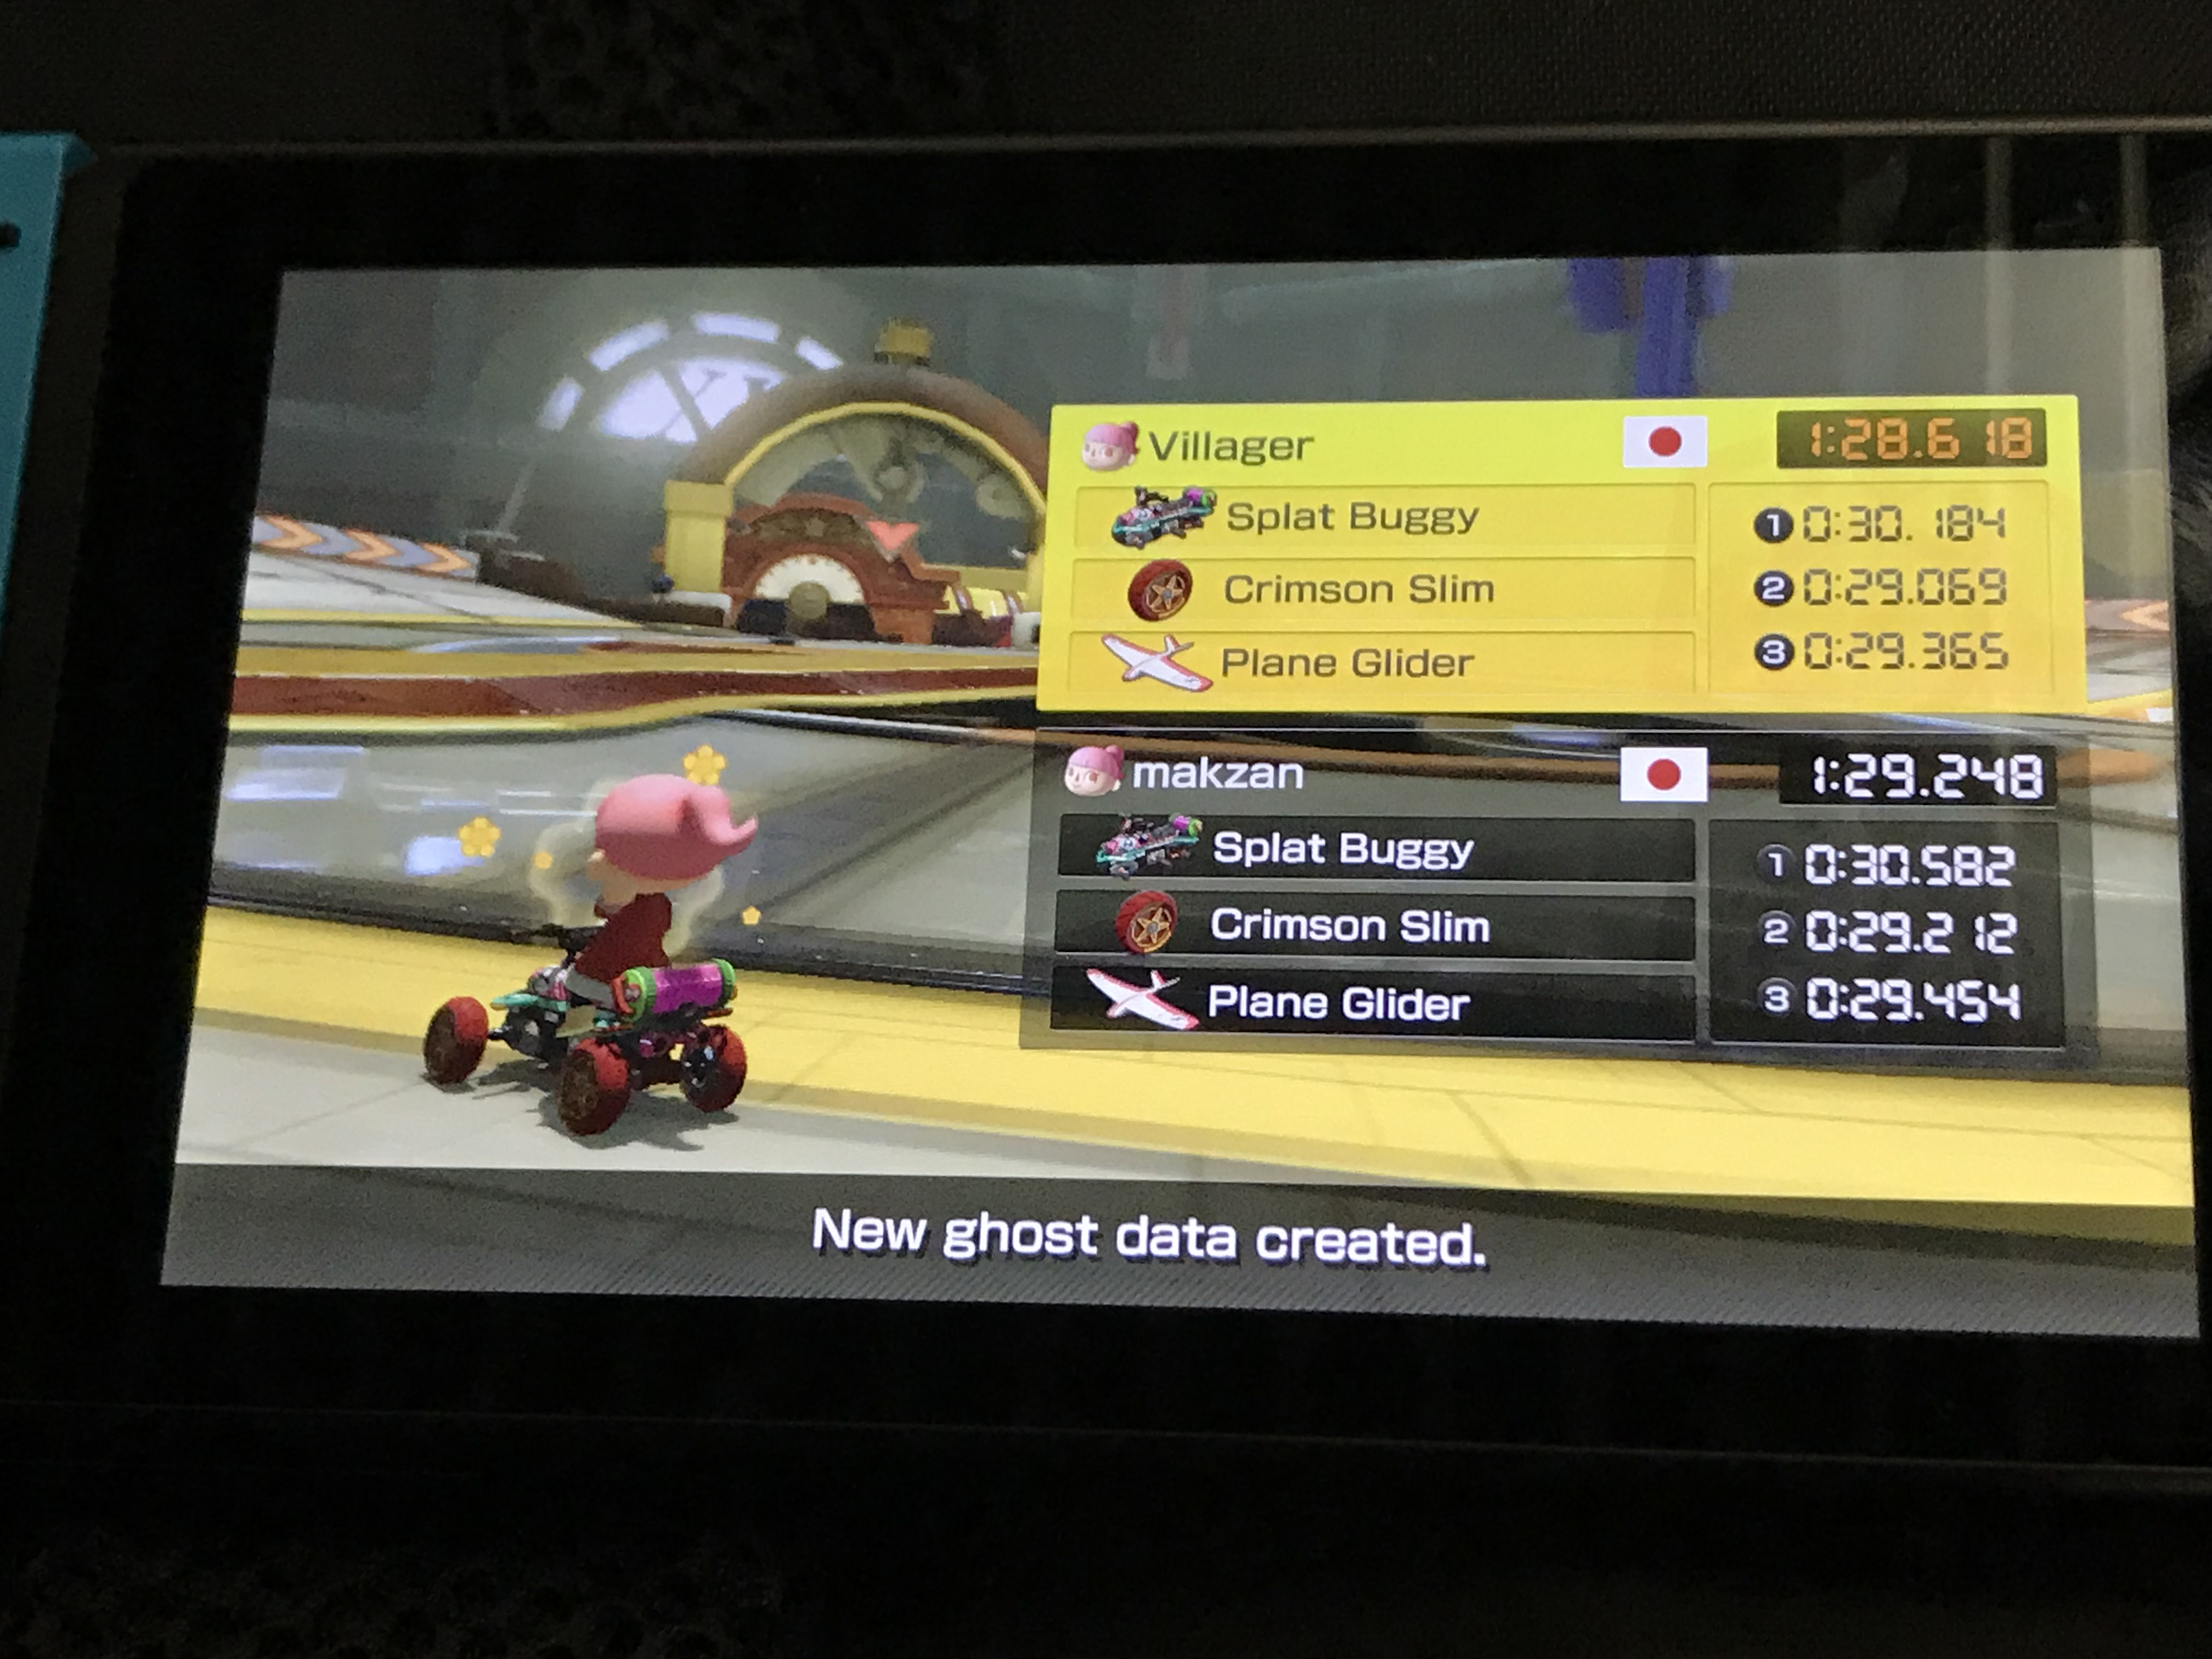 My new record in Mario Kart.